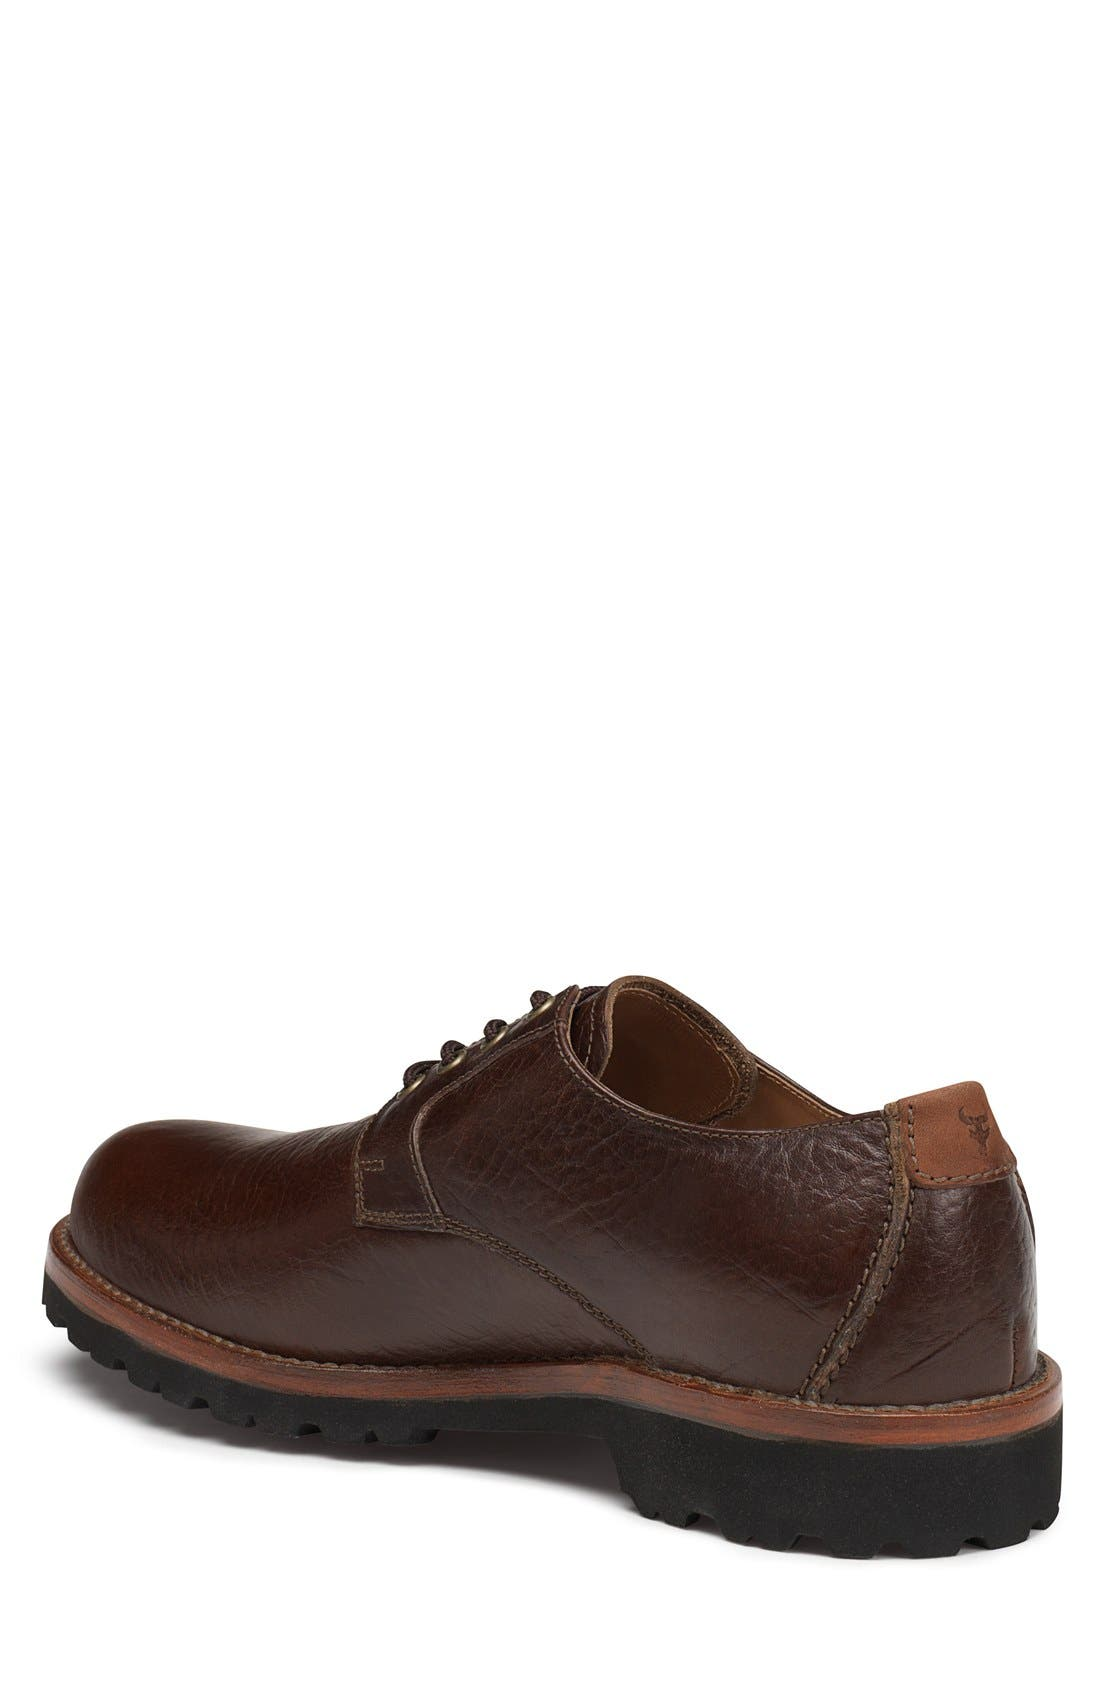 'Gallatin II' Oxford,                             Alternate thumbnail 2, color,                             Bourbon Leather